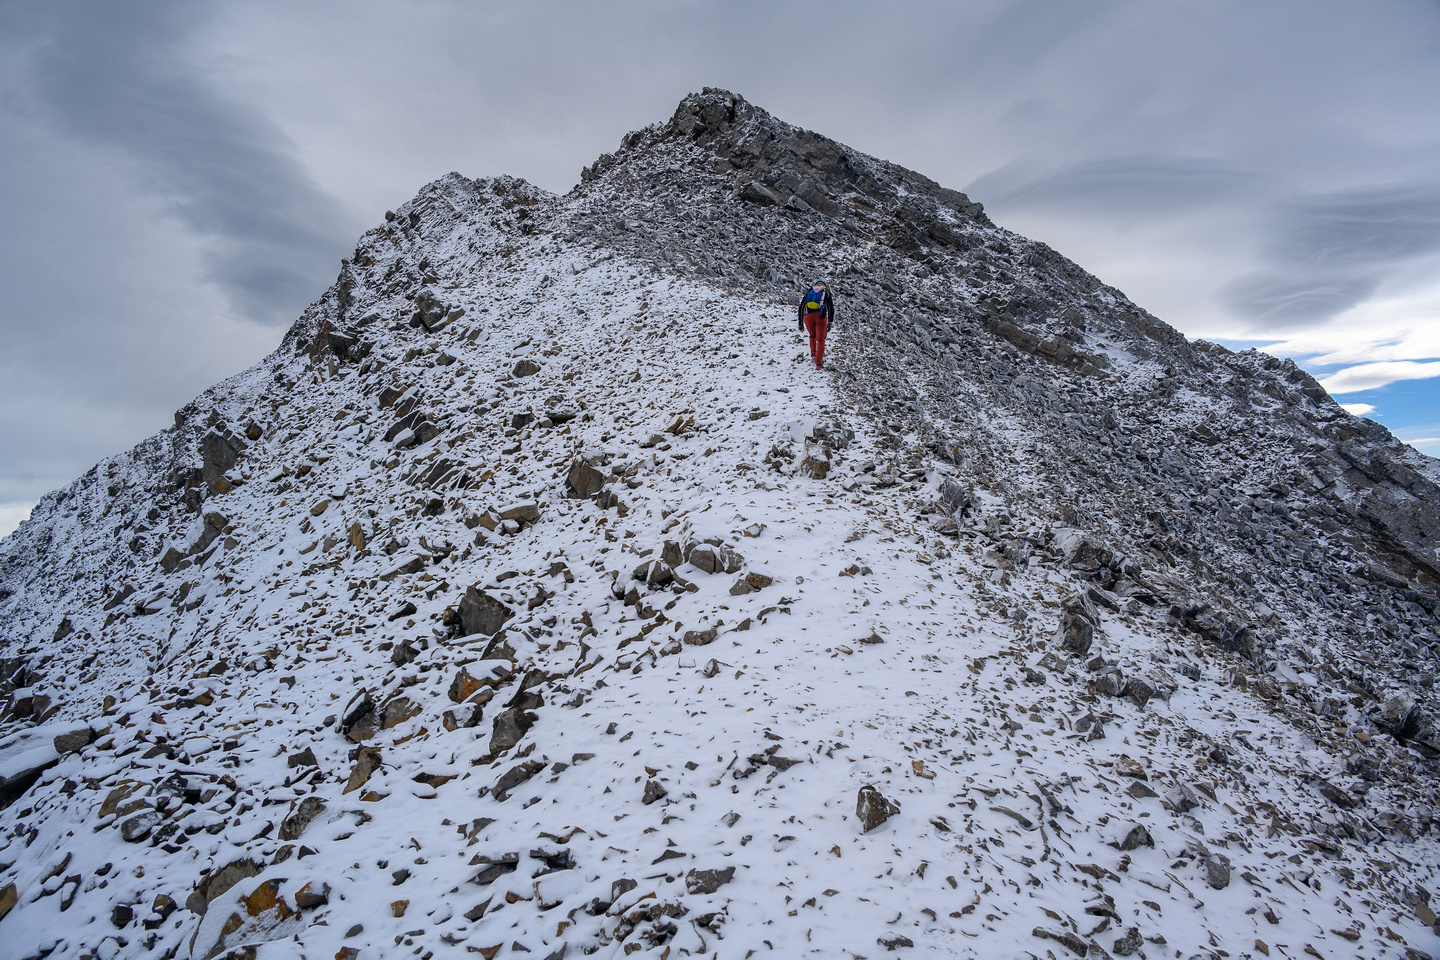 Traversing to the summit of Mount Loomis.